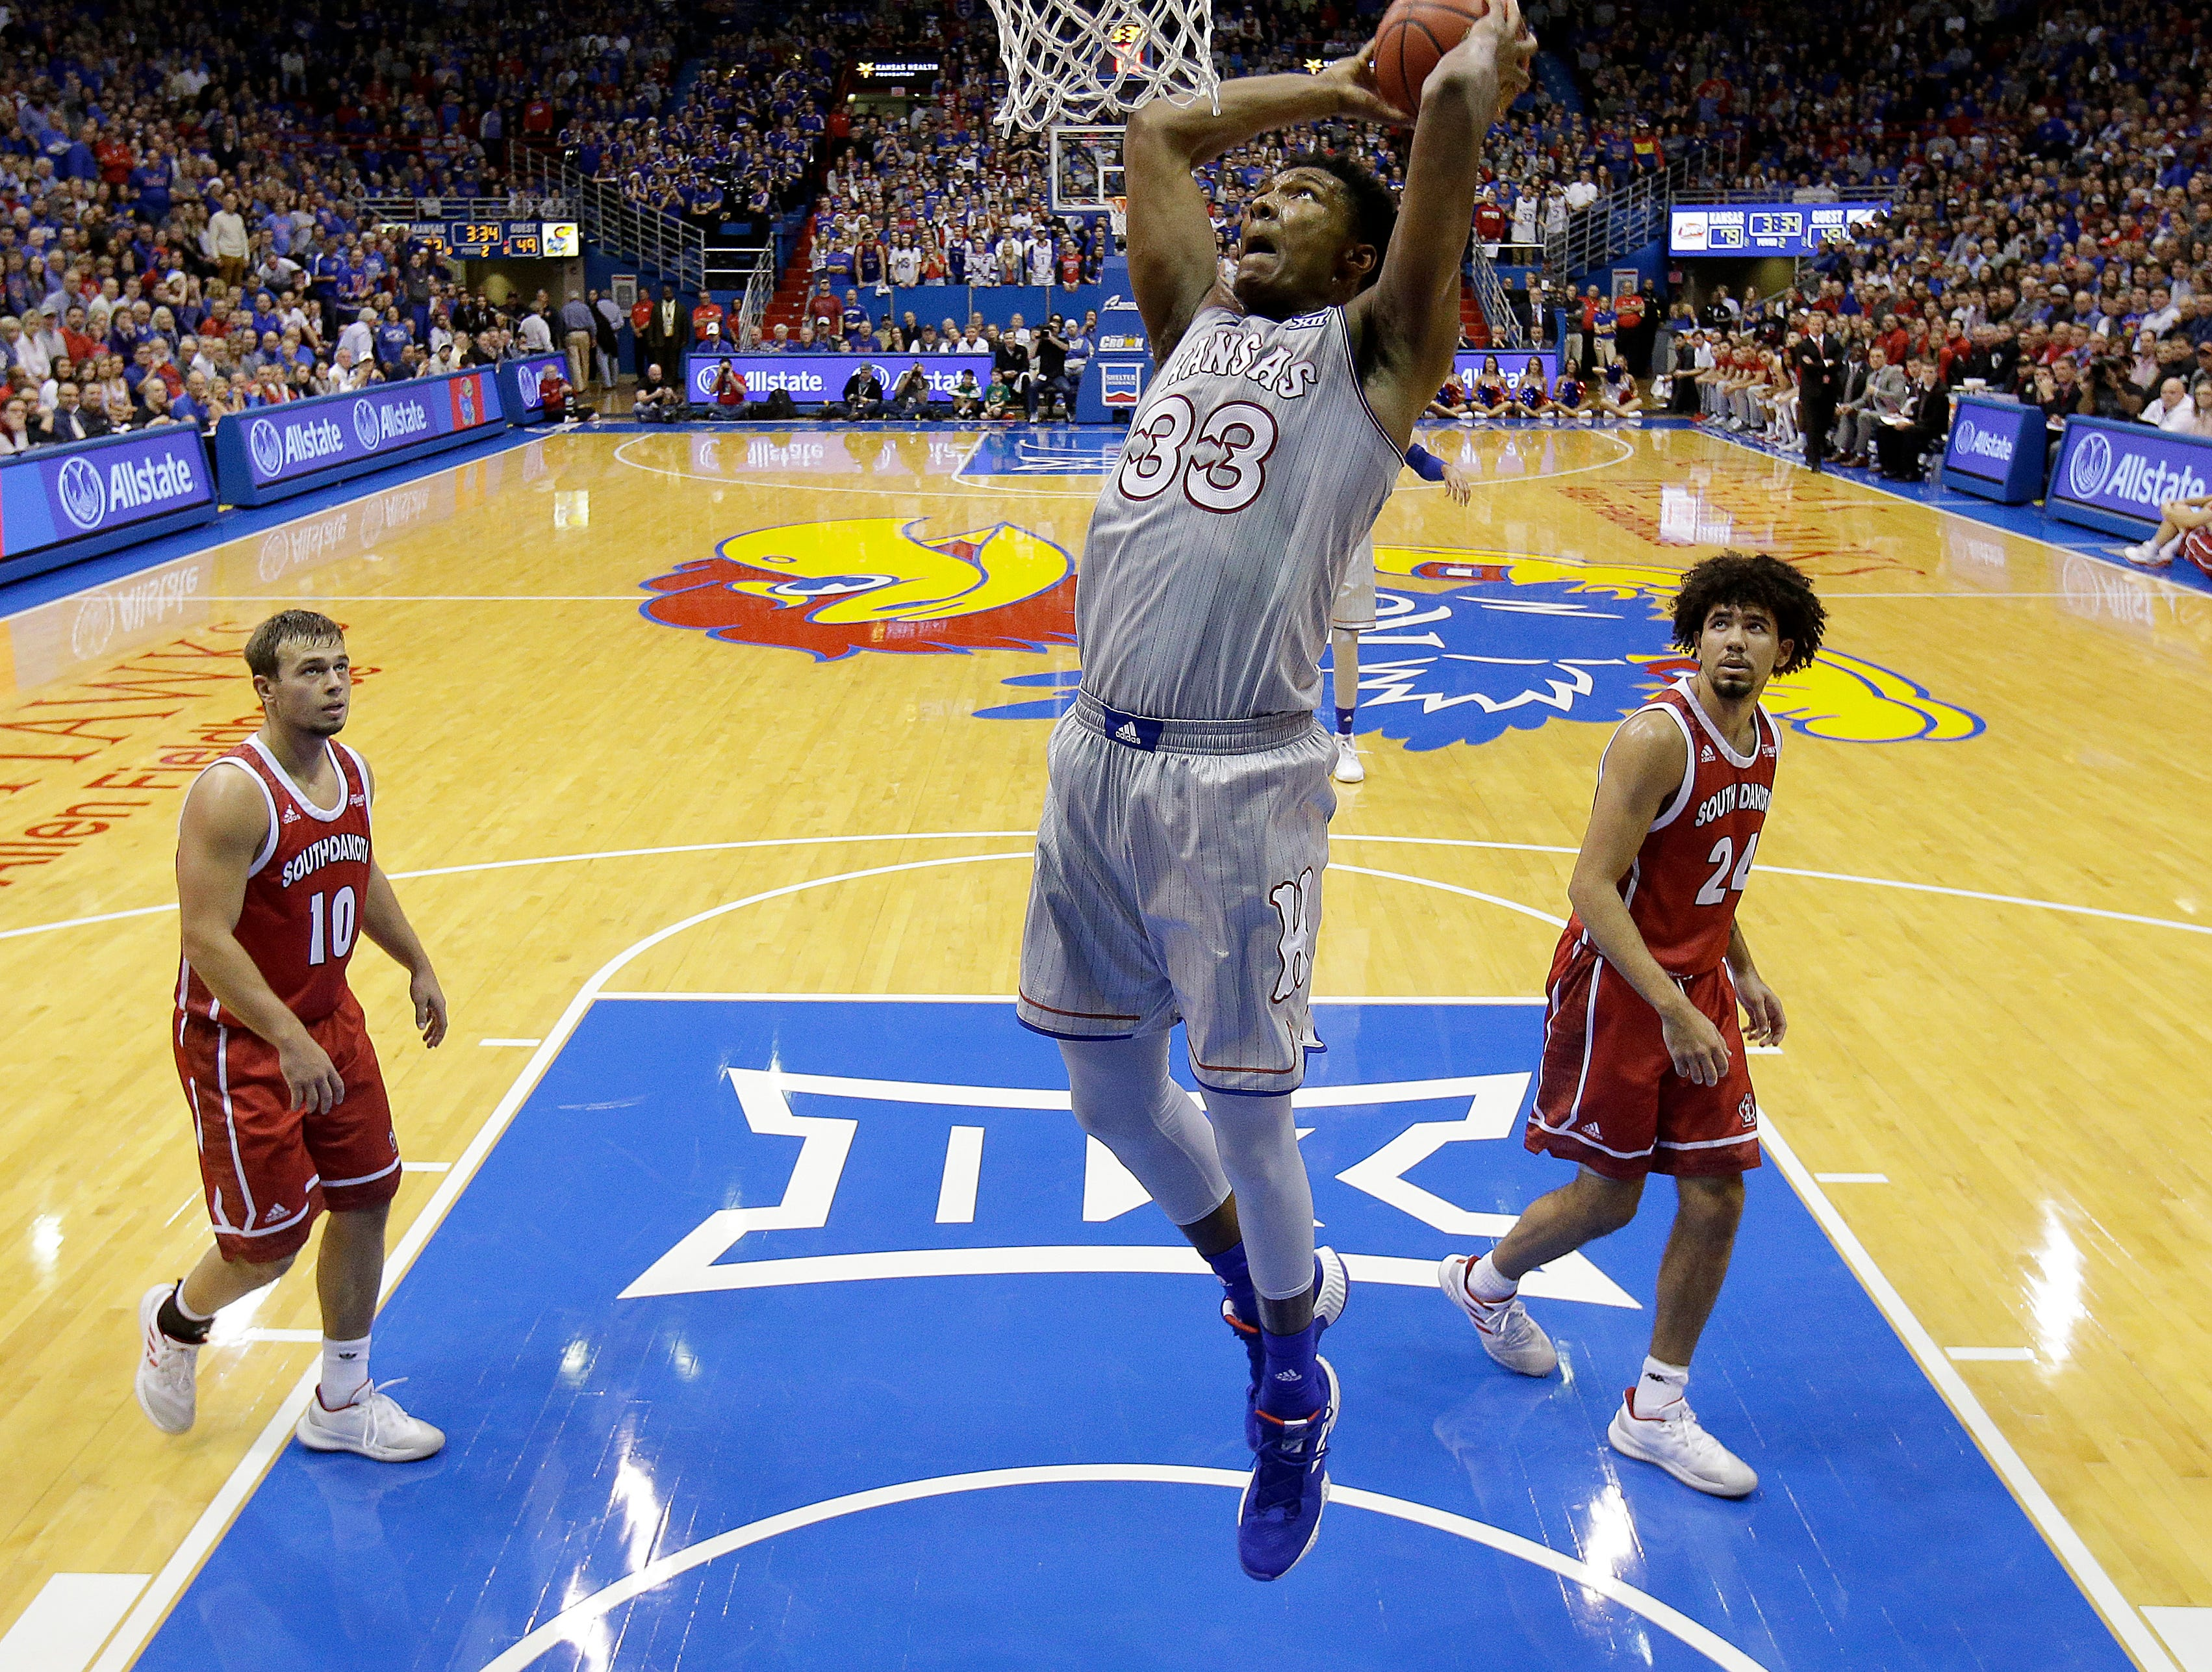 Kansas' David McCormack (33) dunks the ball during the second half of an NCAA college basketball game against South Dakota Tuesday, Dec. 18, 2018, in Lawrence, Kan. Kansas won 89-53. (AP Photo/Charlie Riedel)